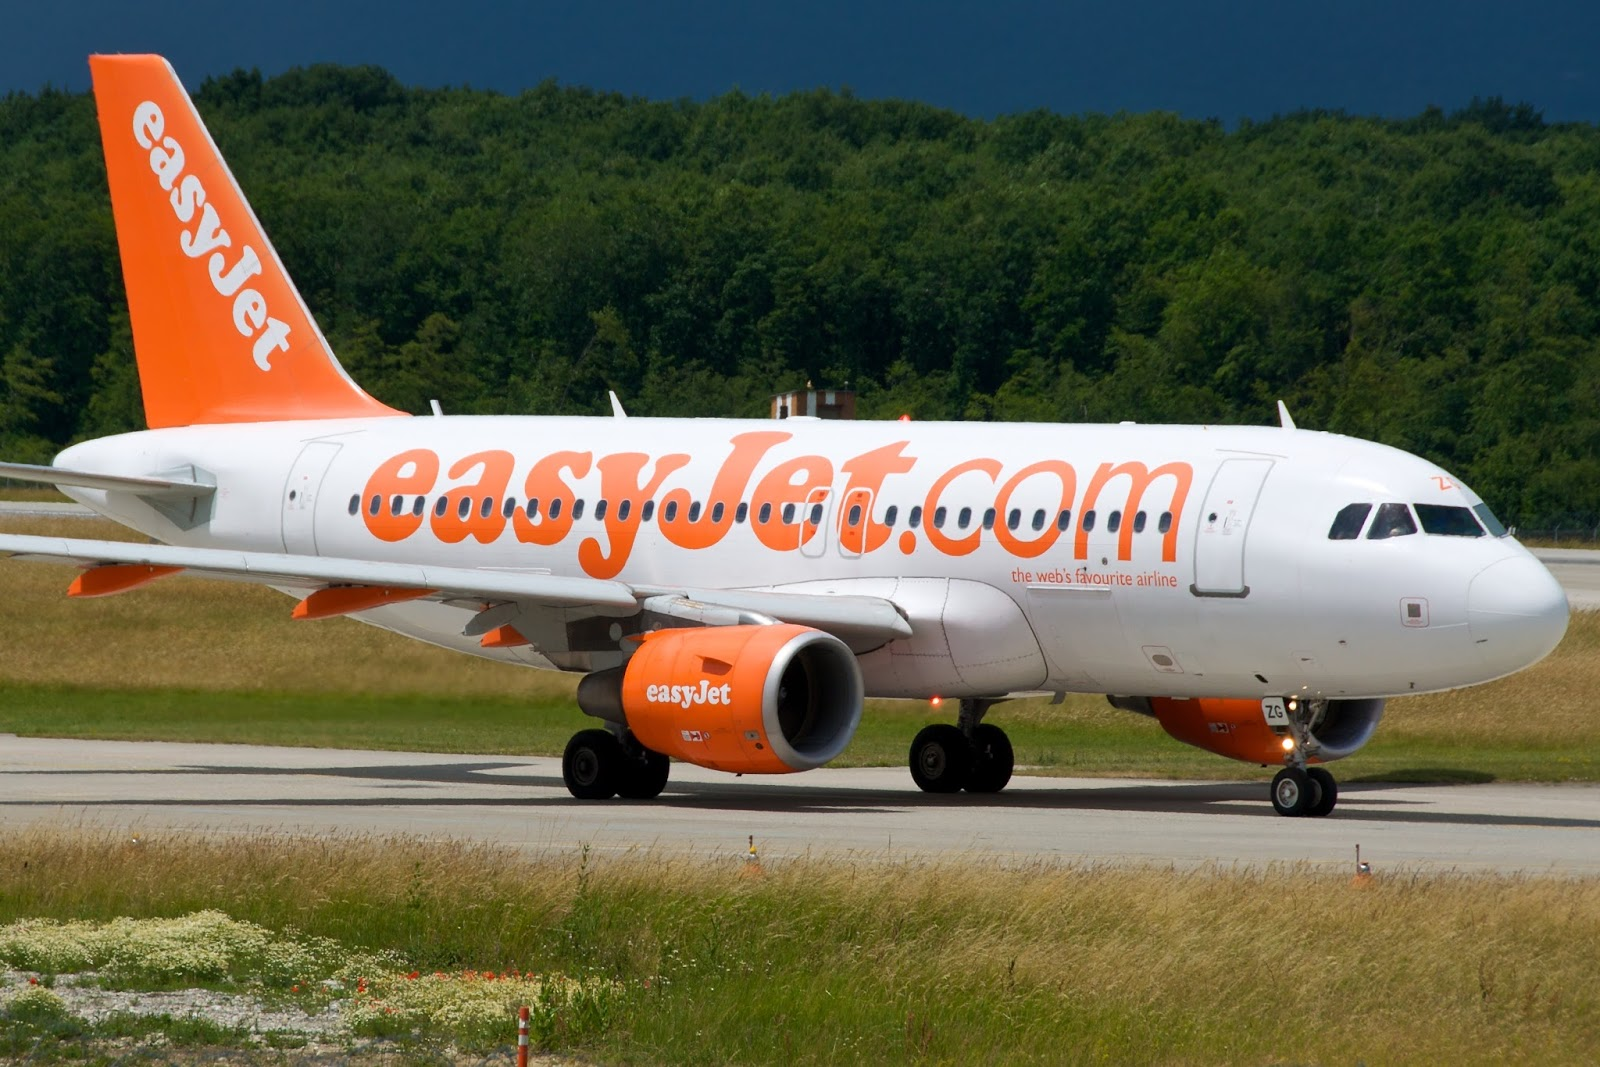 easyjet - photo #45